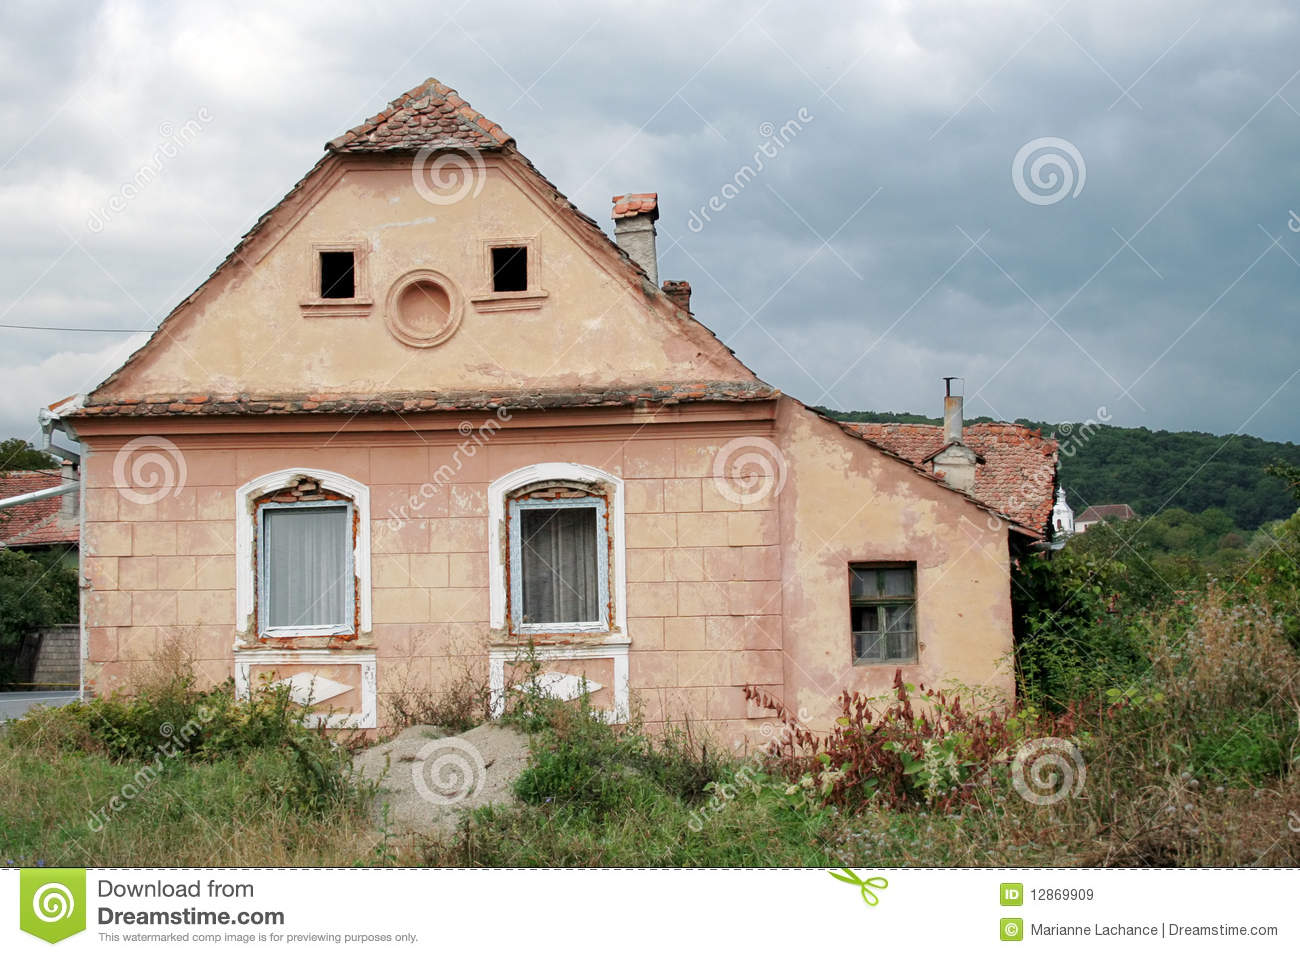 Romanian country house stock image image of neglect for Country house online